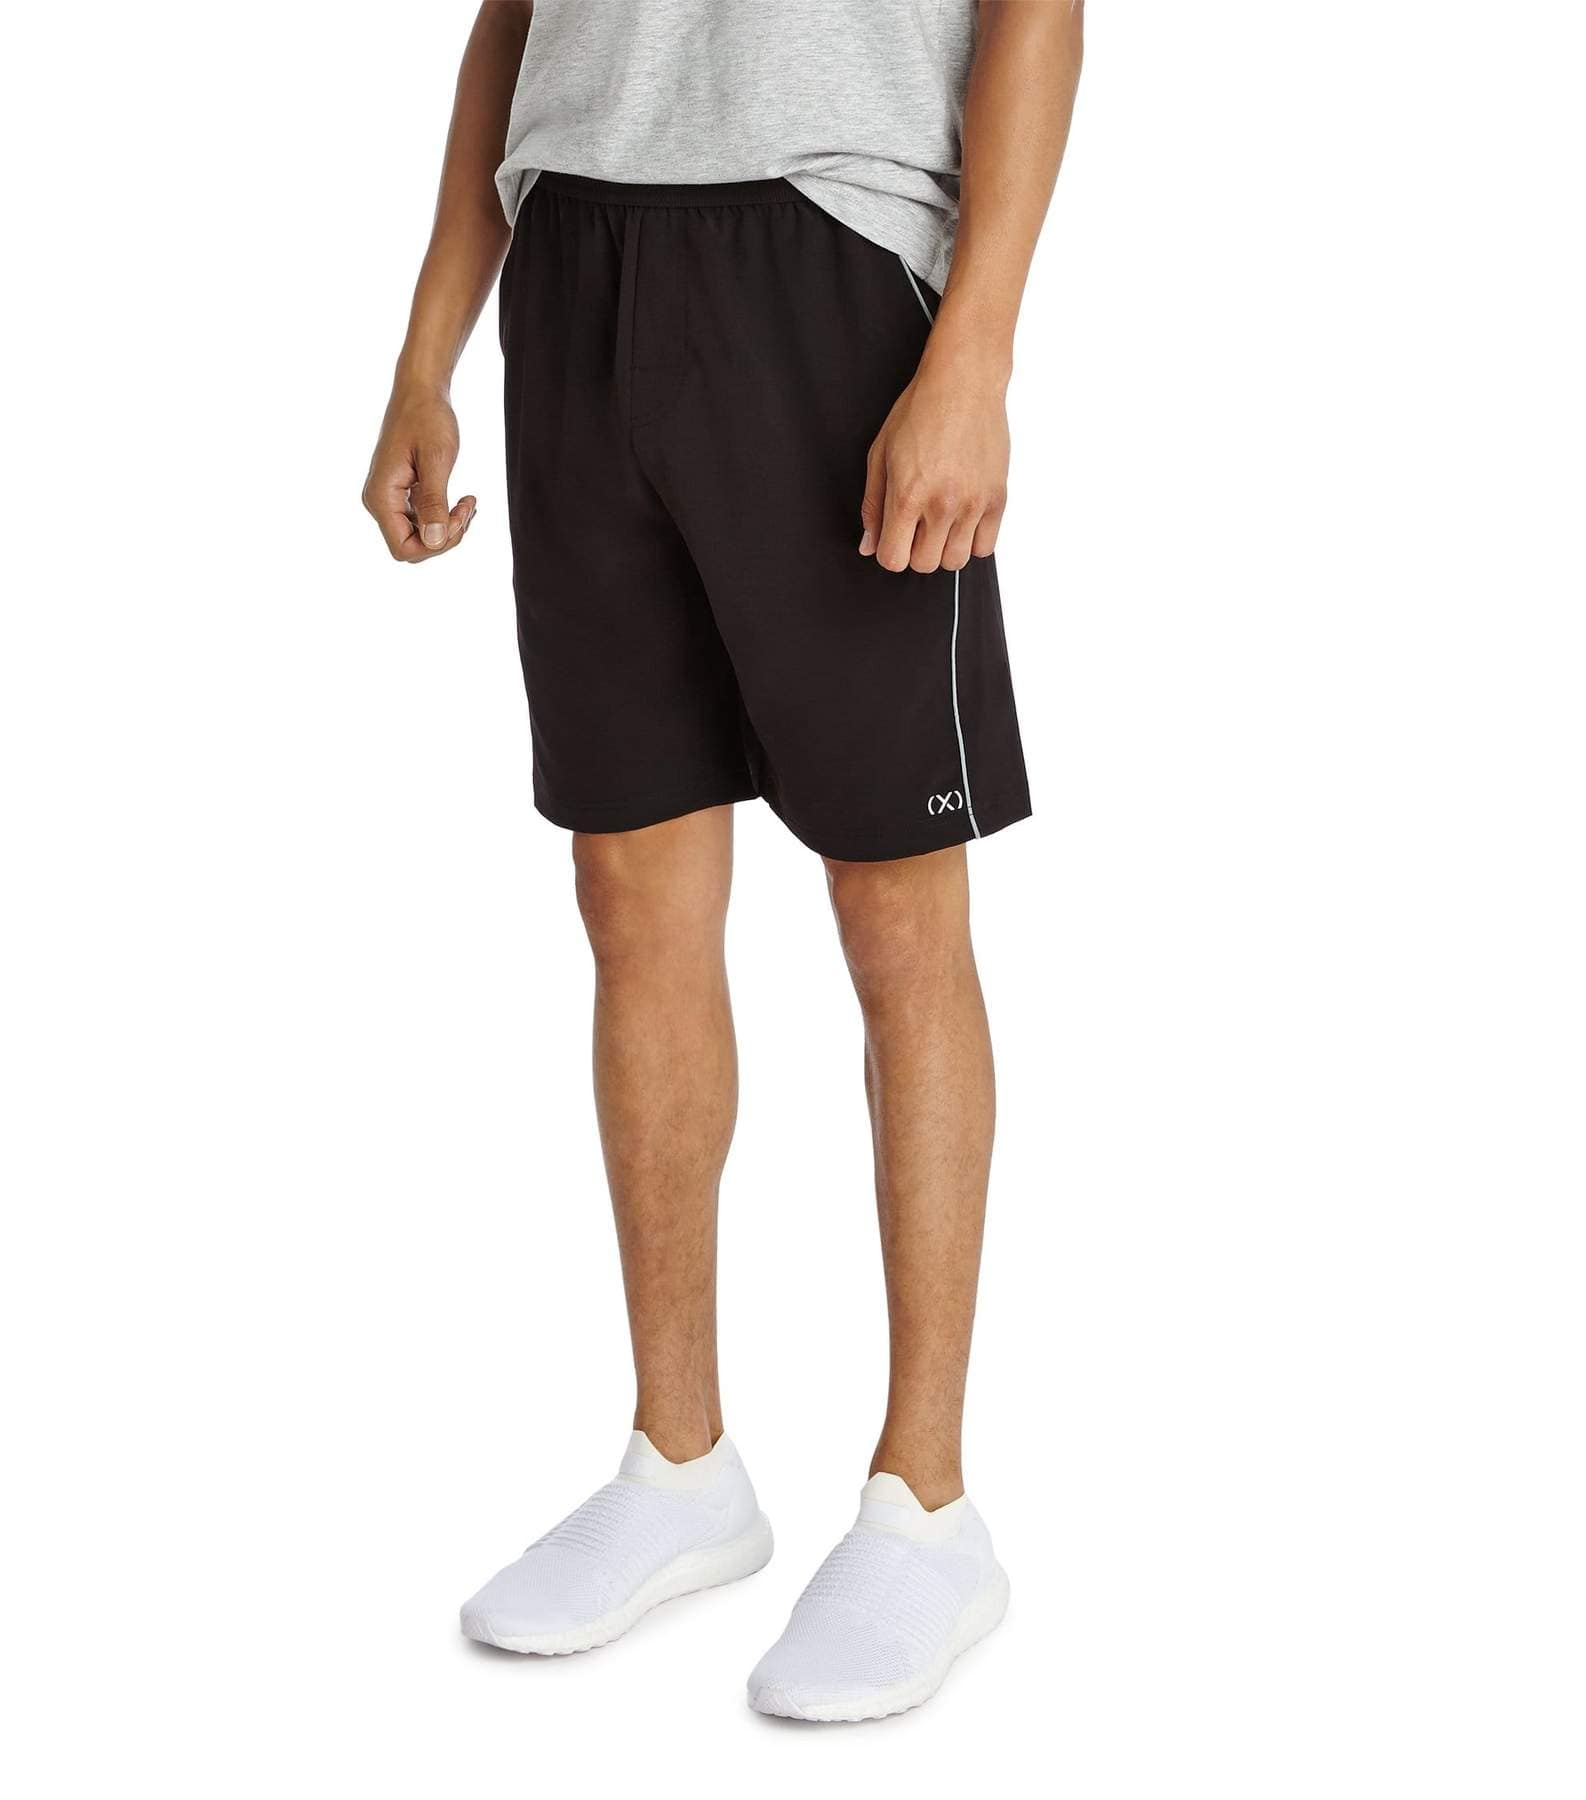 2(X)ist Activewear & Swim Sale: Men's Active Woven Training Short w/ Reflective Piping $7.65, Men's Catalina Swim Shorts $11.05 & More + FS on $50+